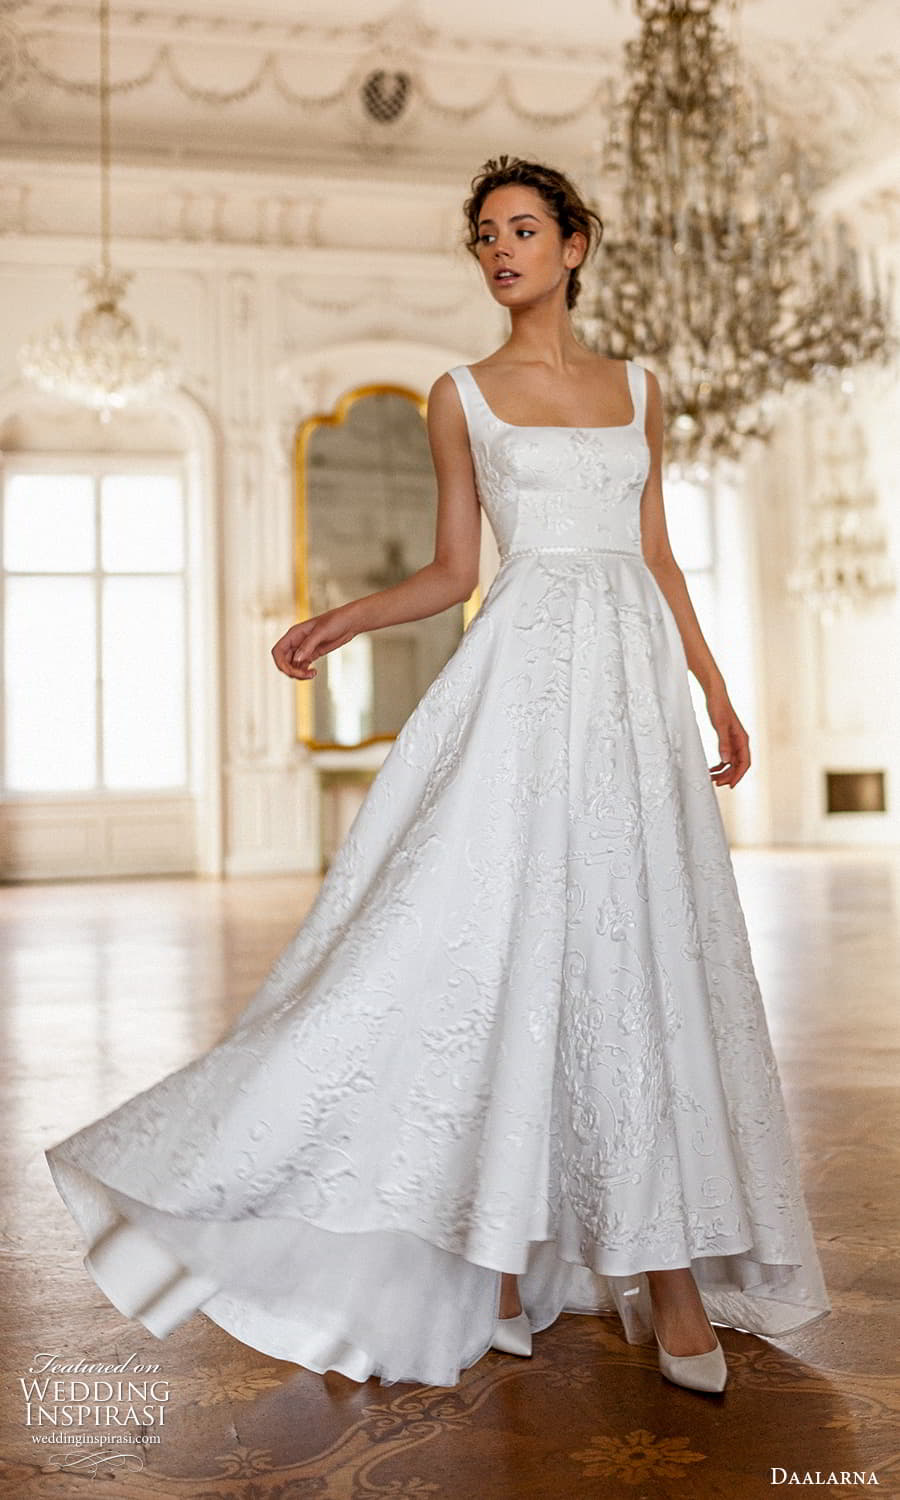 daalarna spring 2022 bridal sleeveless thick straps square neckline embellished a line ball gown wedding dress (11) mv